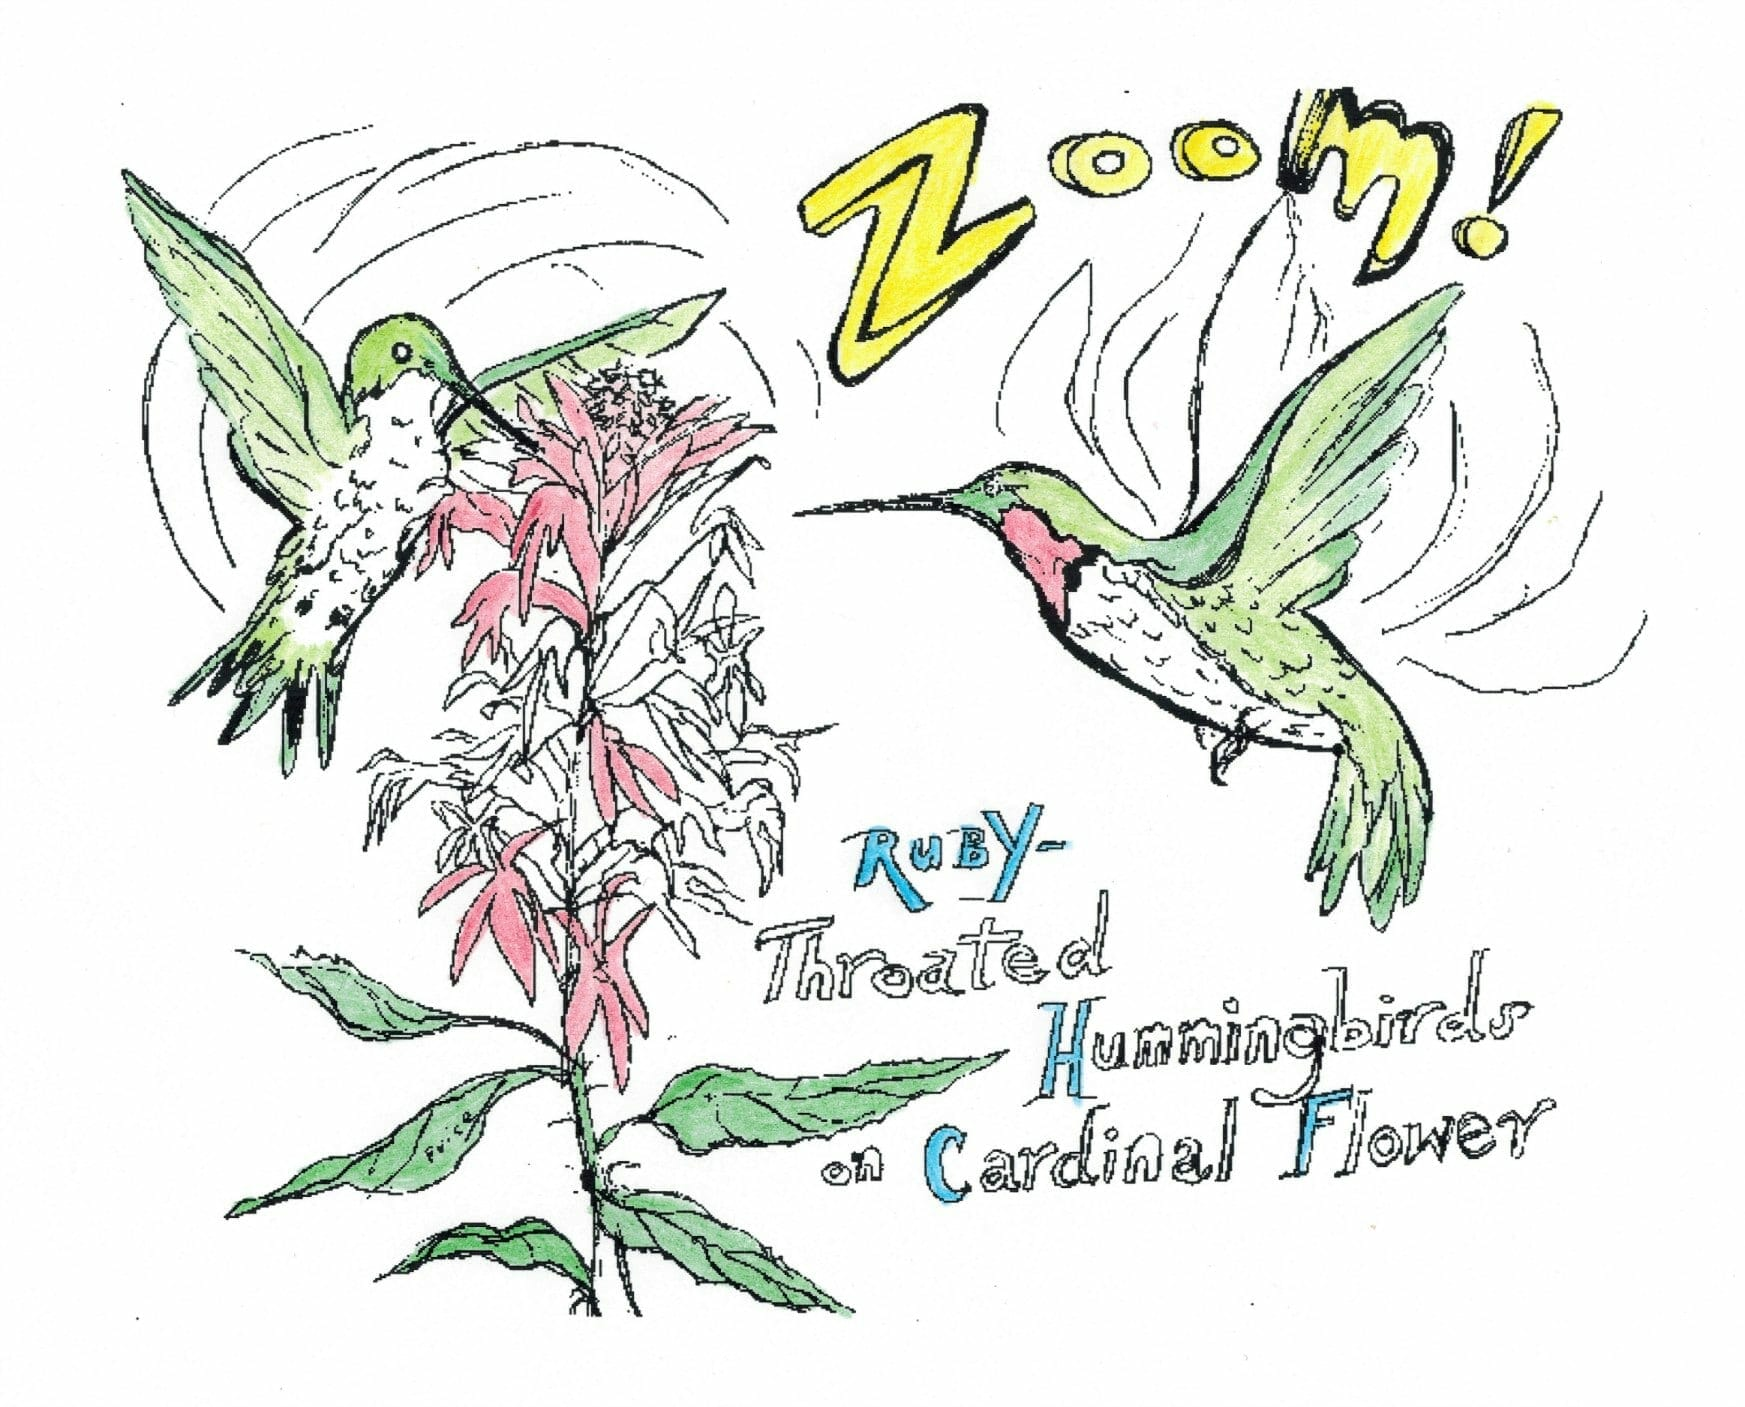 coloring pages gnps coloring pages gnps ruby throated hummingbird coloring pages